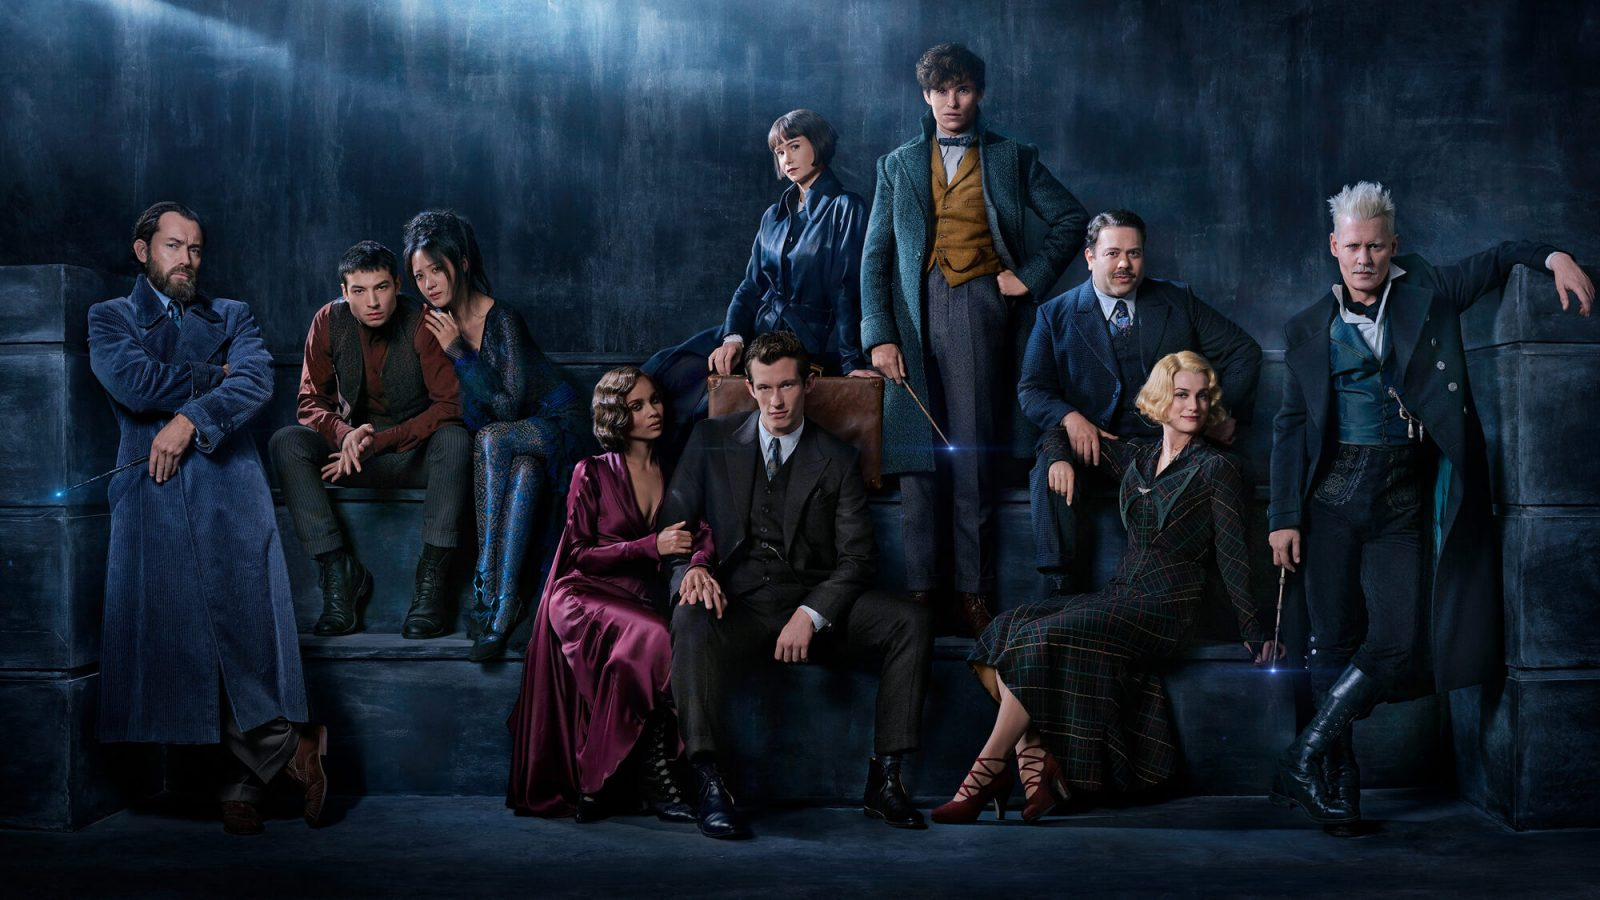 Fantastic Beasts: The Crimes of Grindelwald Teaser Trailer